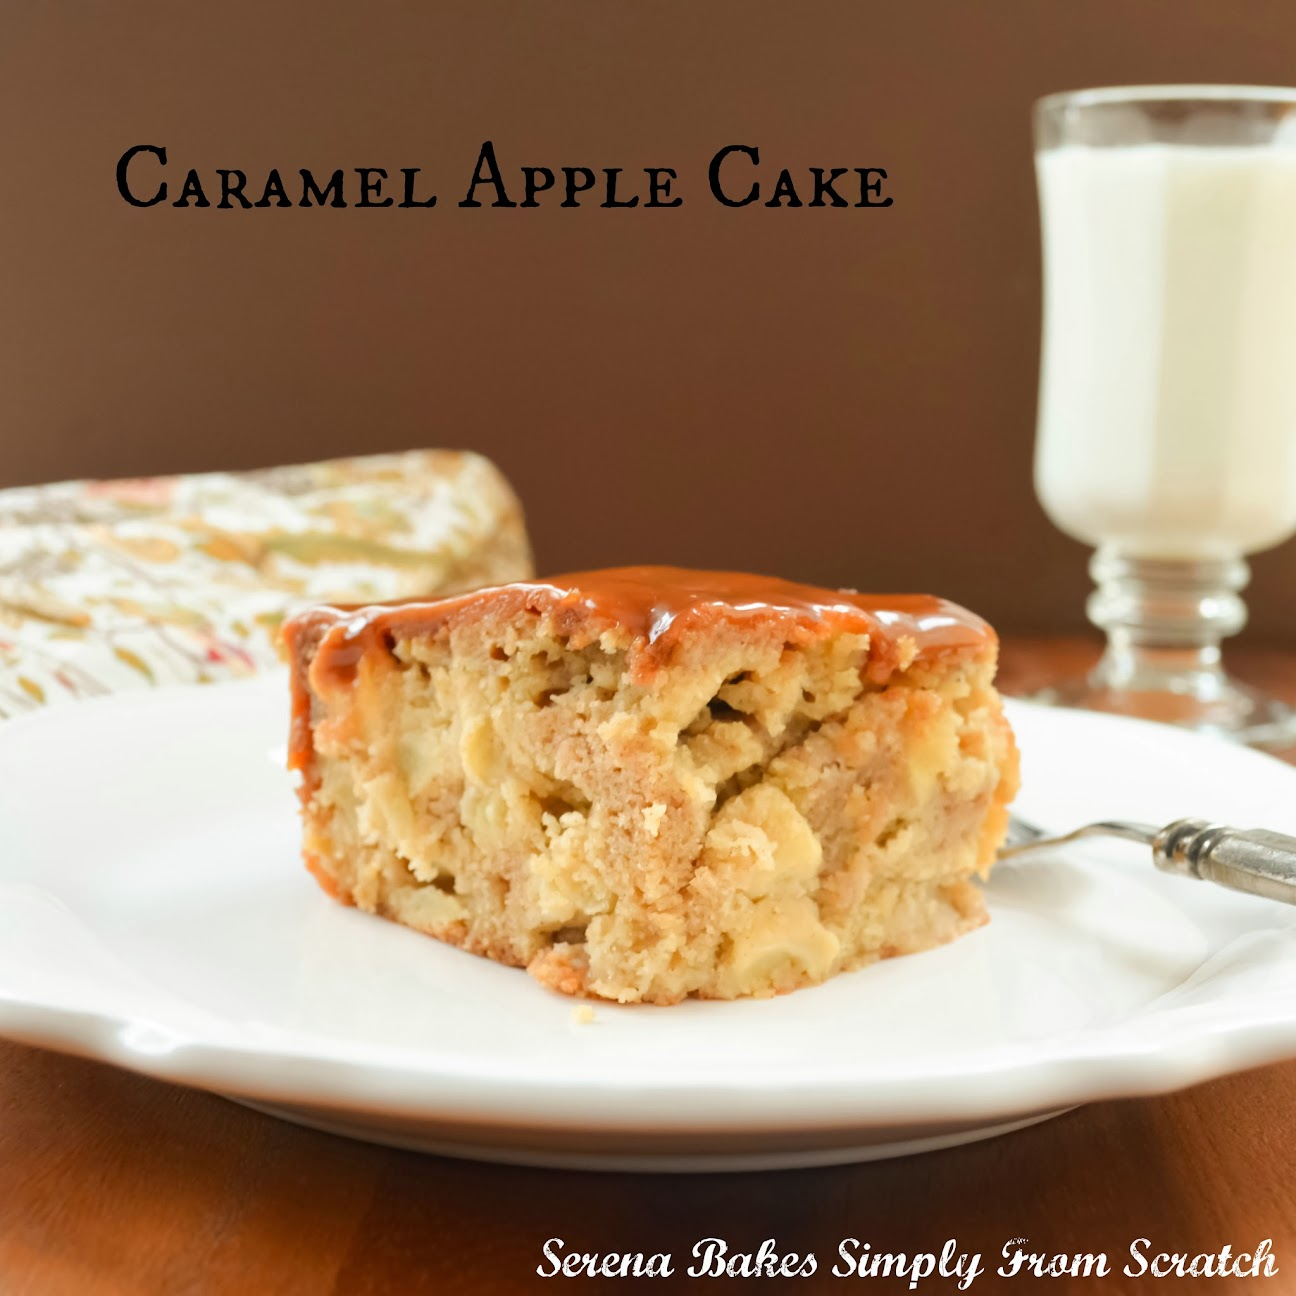 Caramel-Apple-Cake.jpg